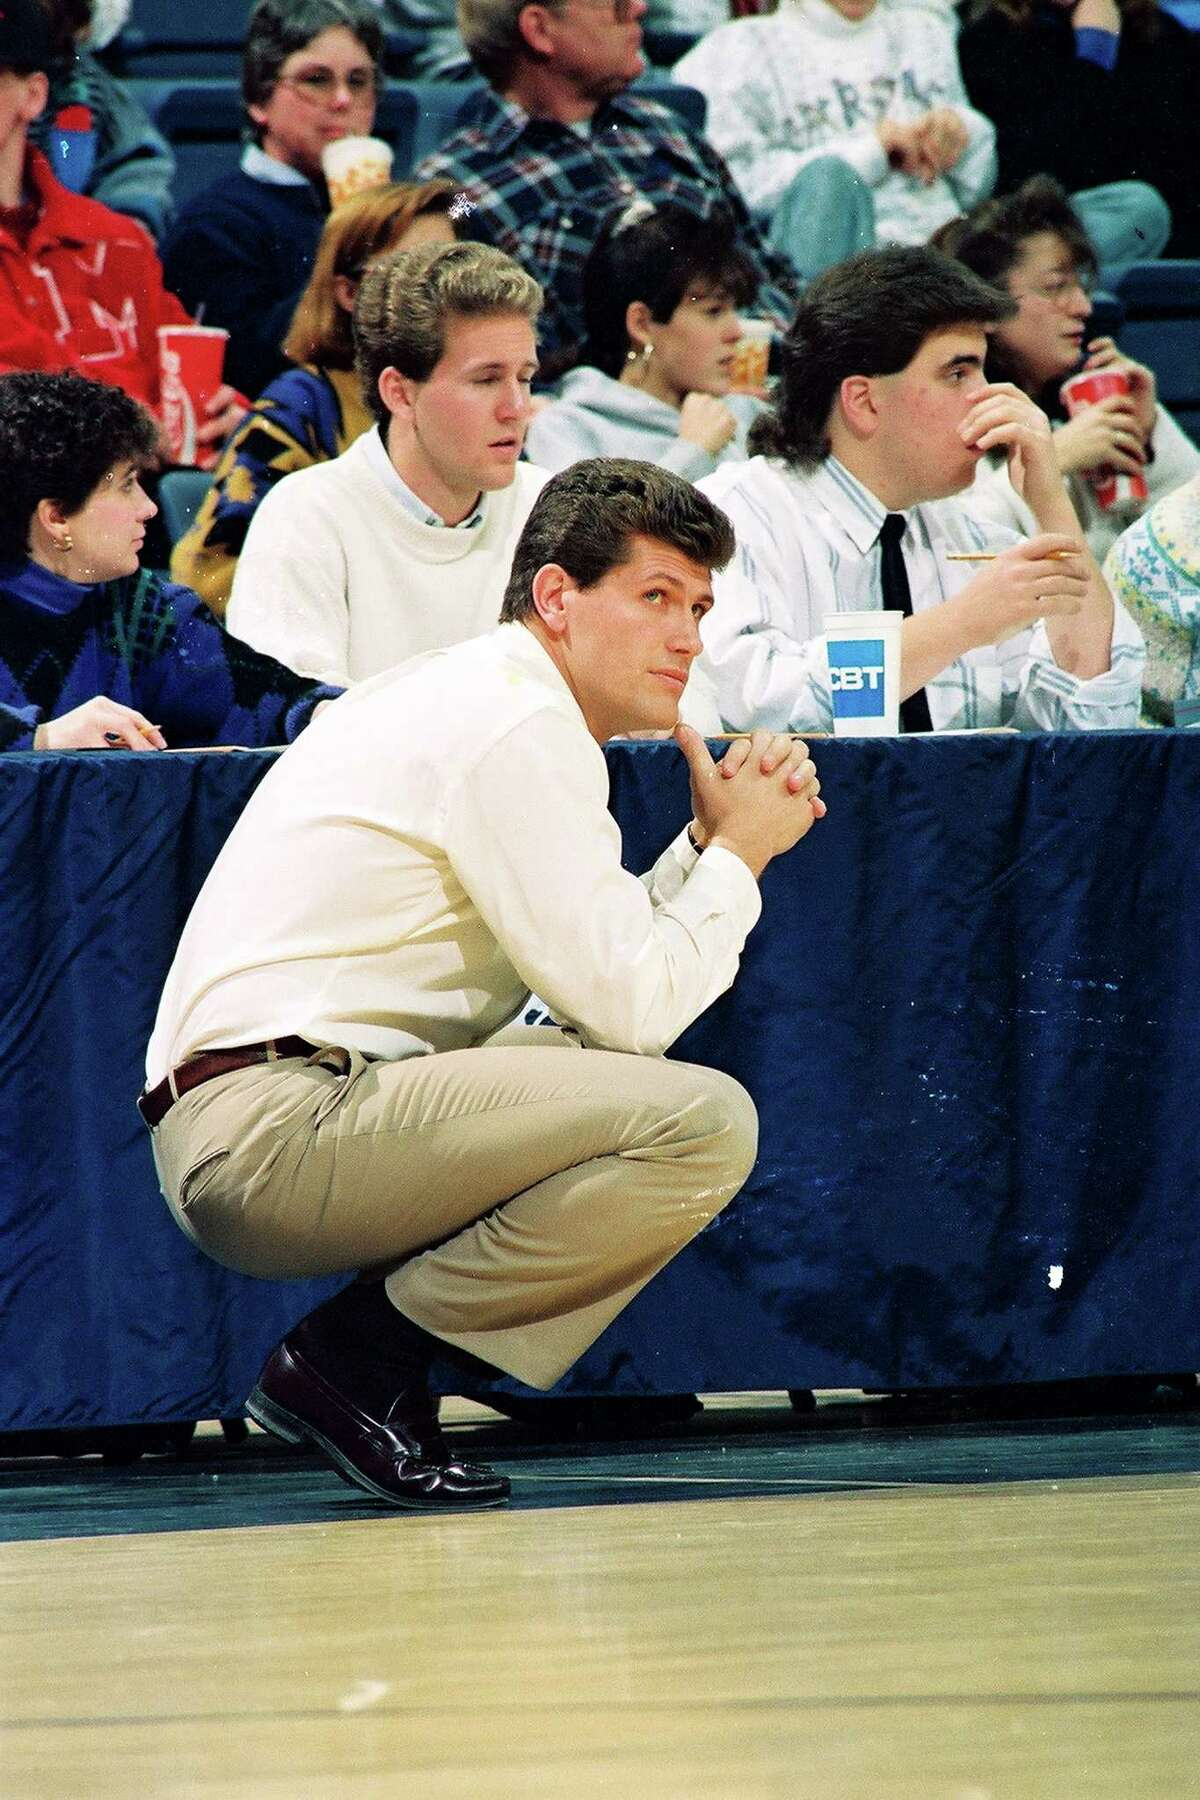 University of Connecticut coach Geno Auriemma watches the action, while crouched on the sideline, Gampel Pavilion, Storrs, CT, 1991. (Photo by Bob Stowell/Gety Images)